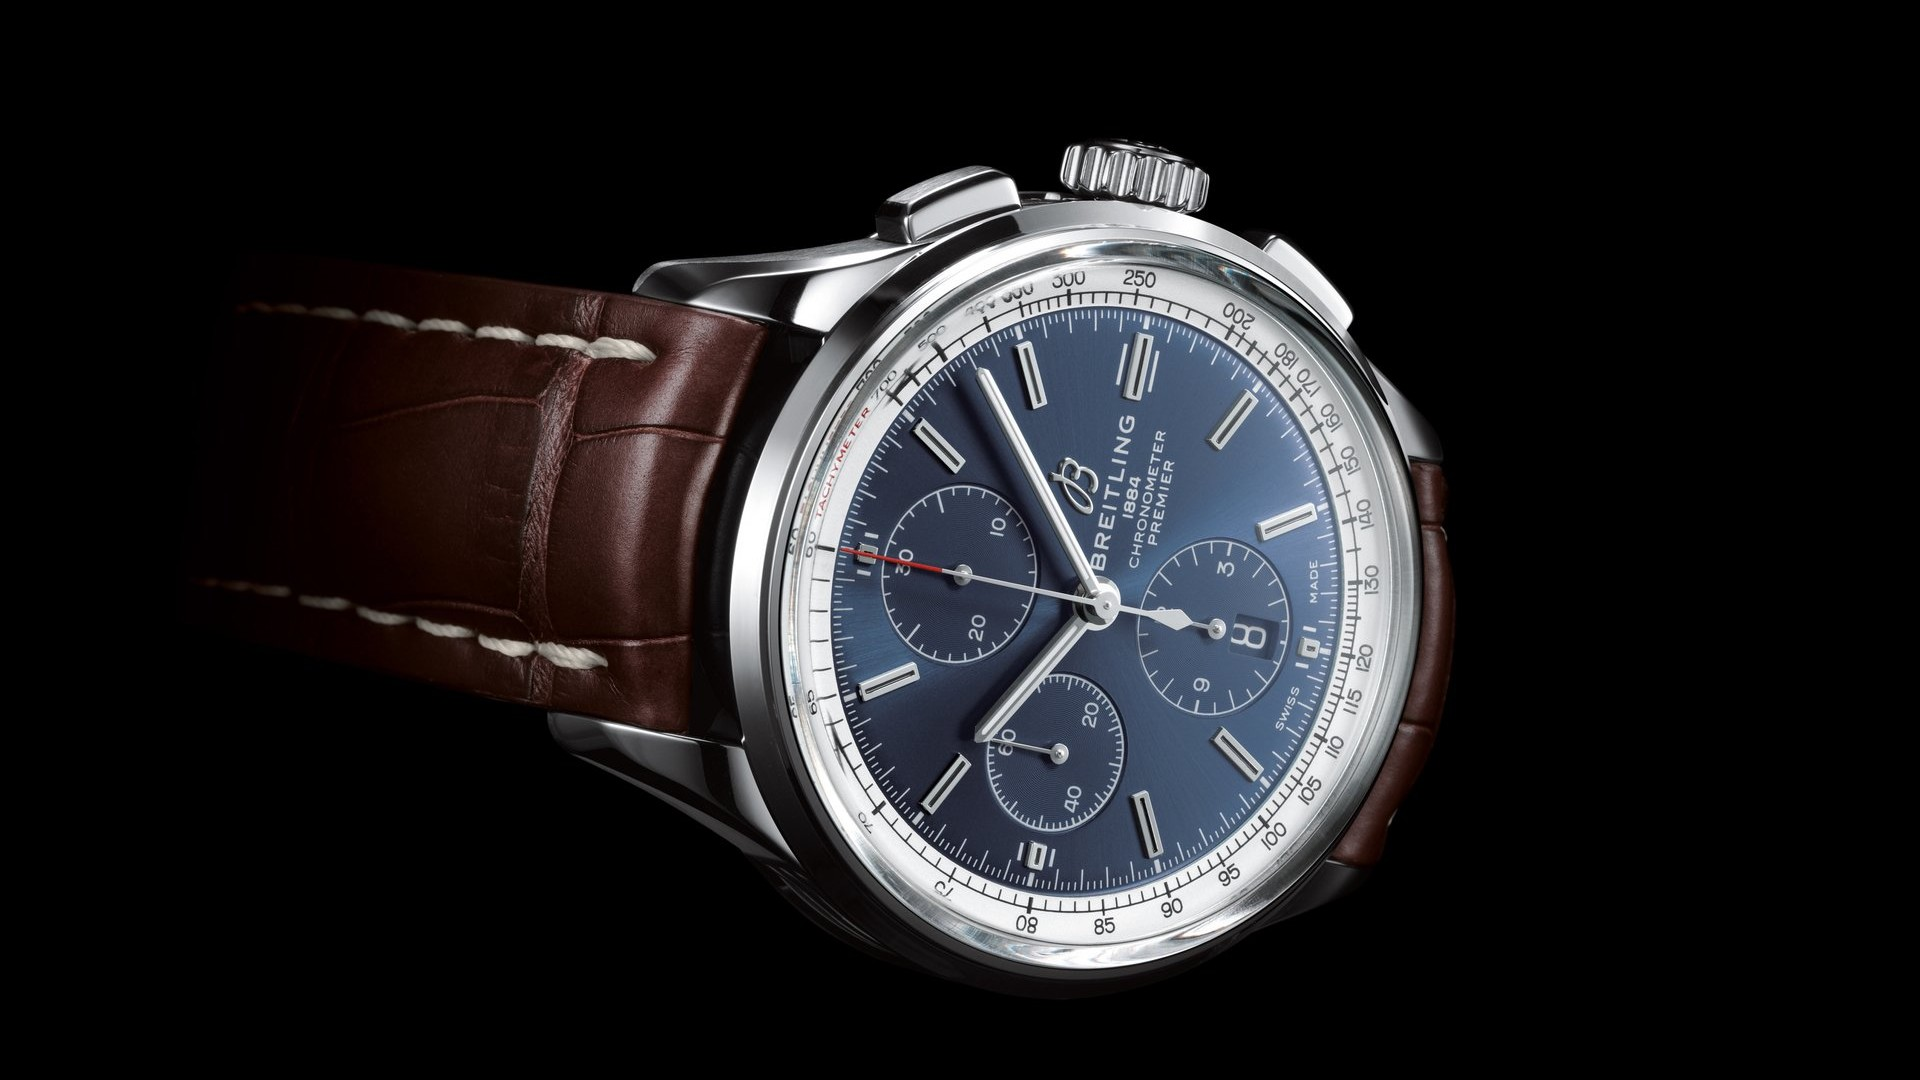 Breitling Premier Chronograph watch